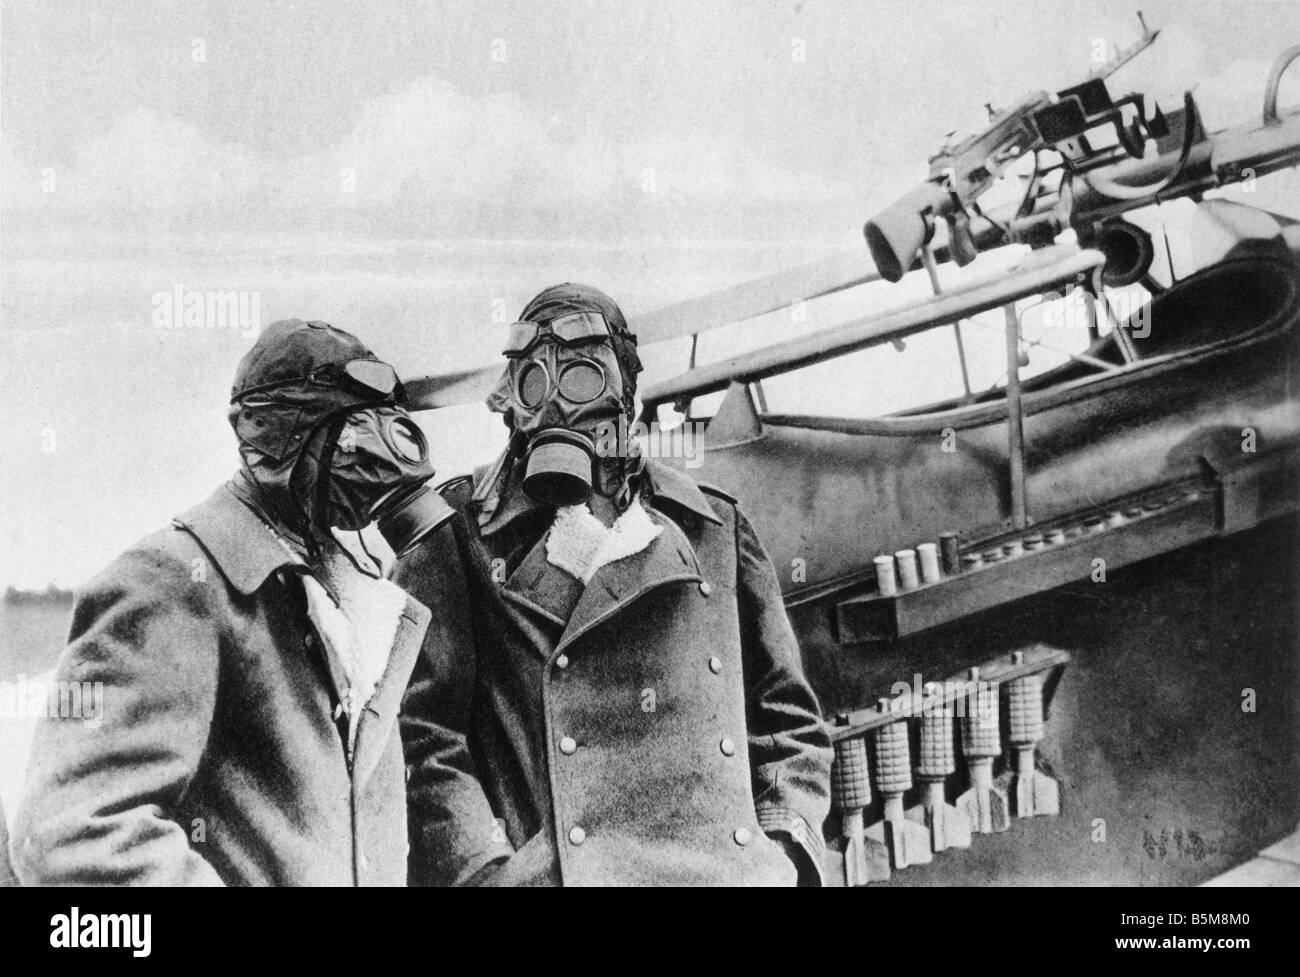 2 G55 G1 1918 E German Plane Crew with Gasmasks Photo History WWI Gas War Western Front Crew of a Battle Plane with - Stock Image